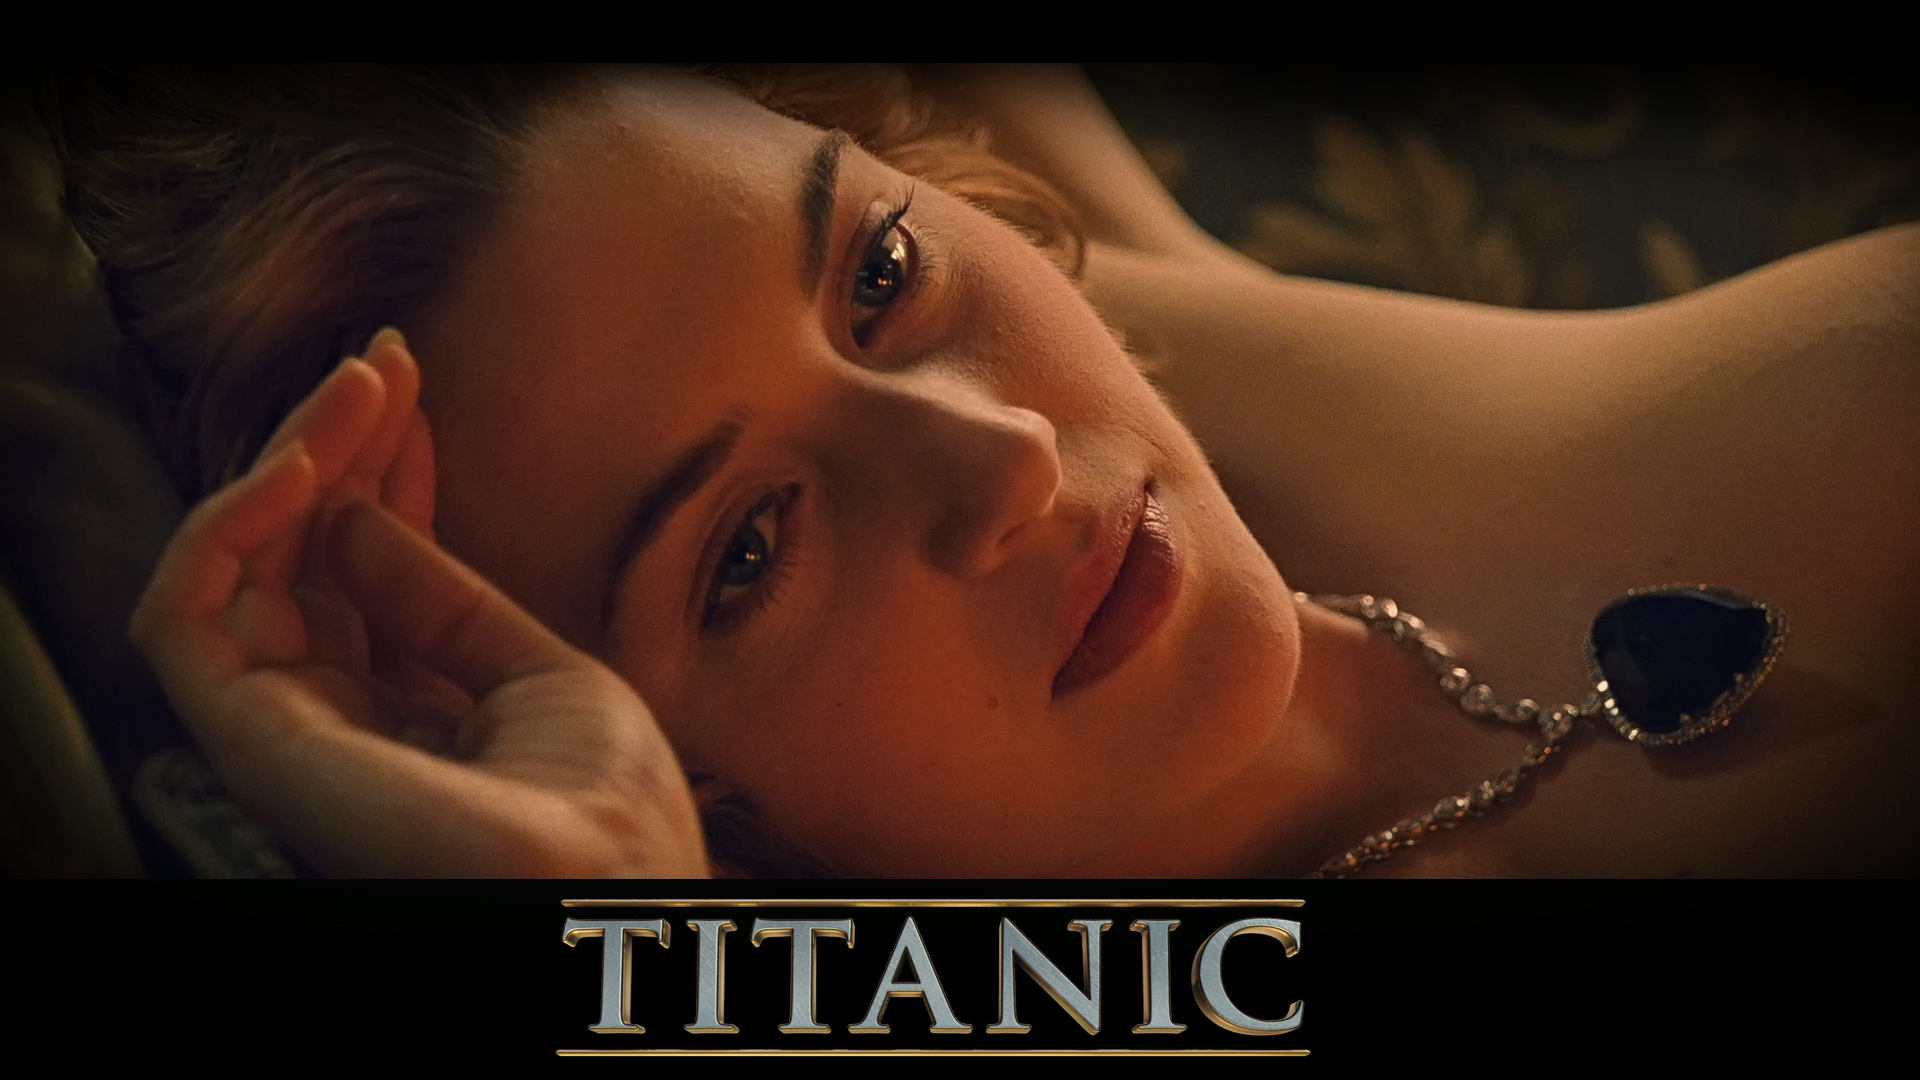 Kate Winslet in Titanic 243.22 Kb